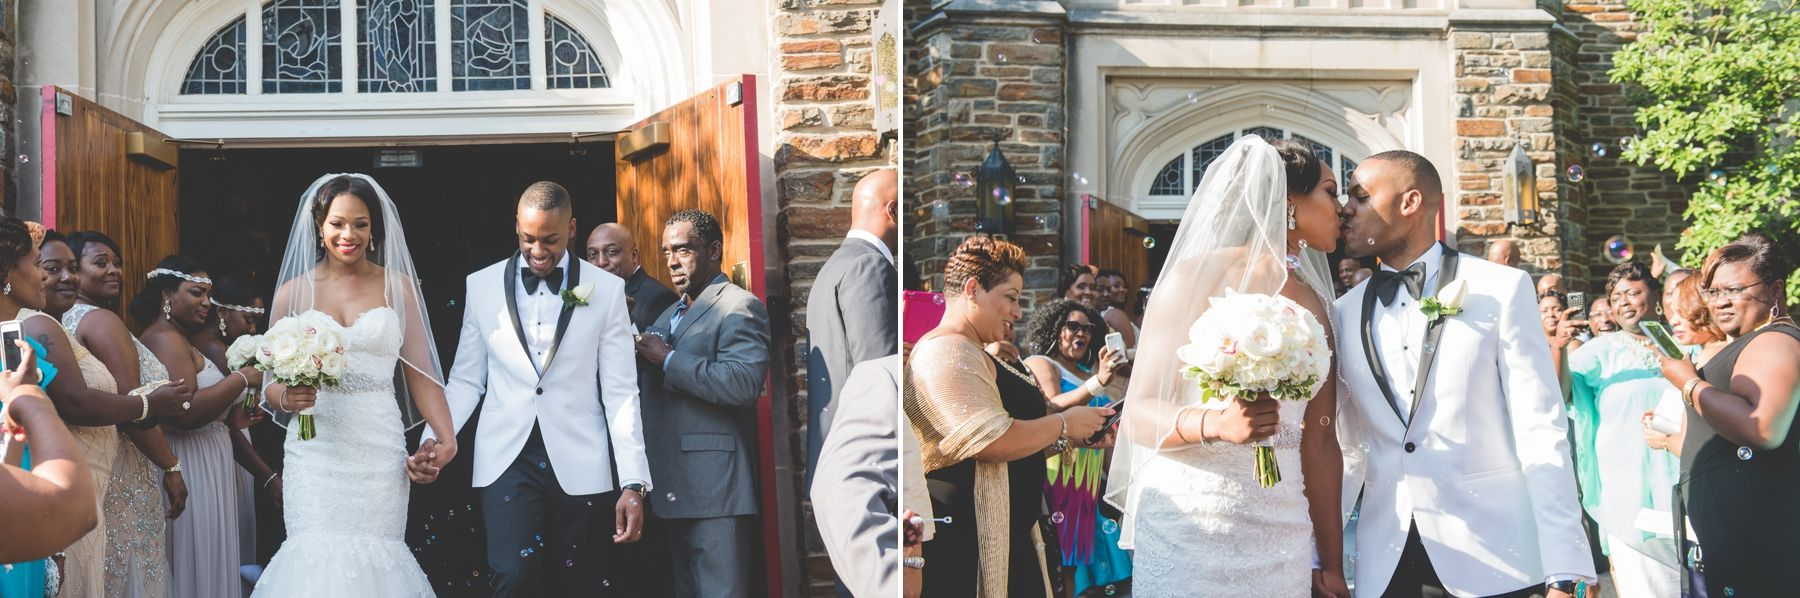 Mansion at valley country club wedding maryland photographer